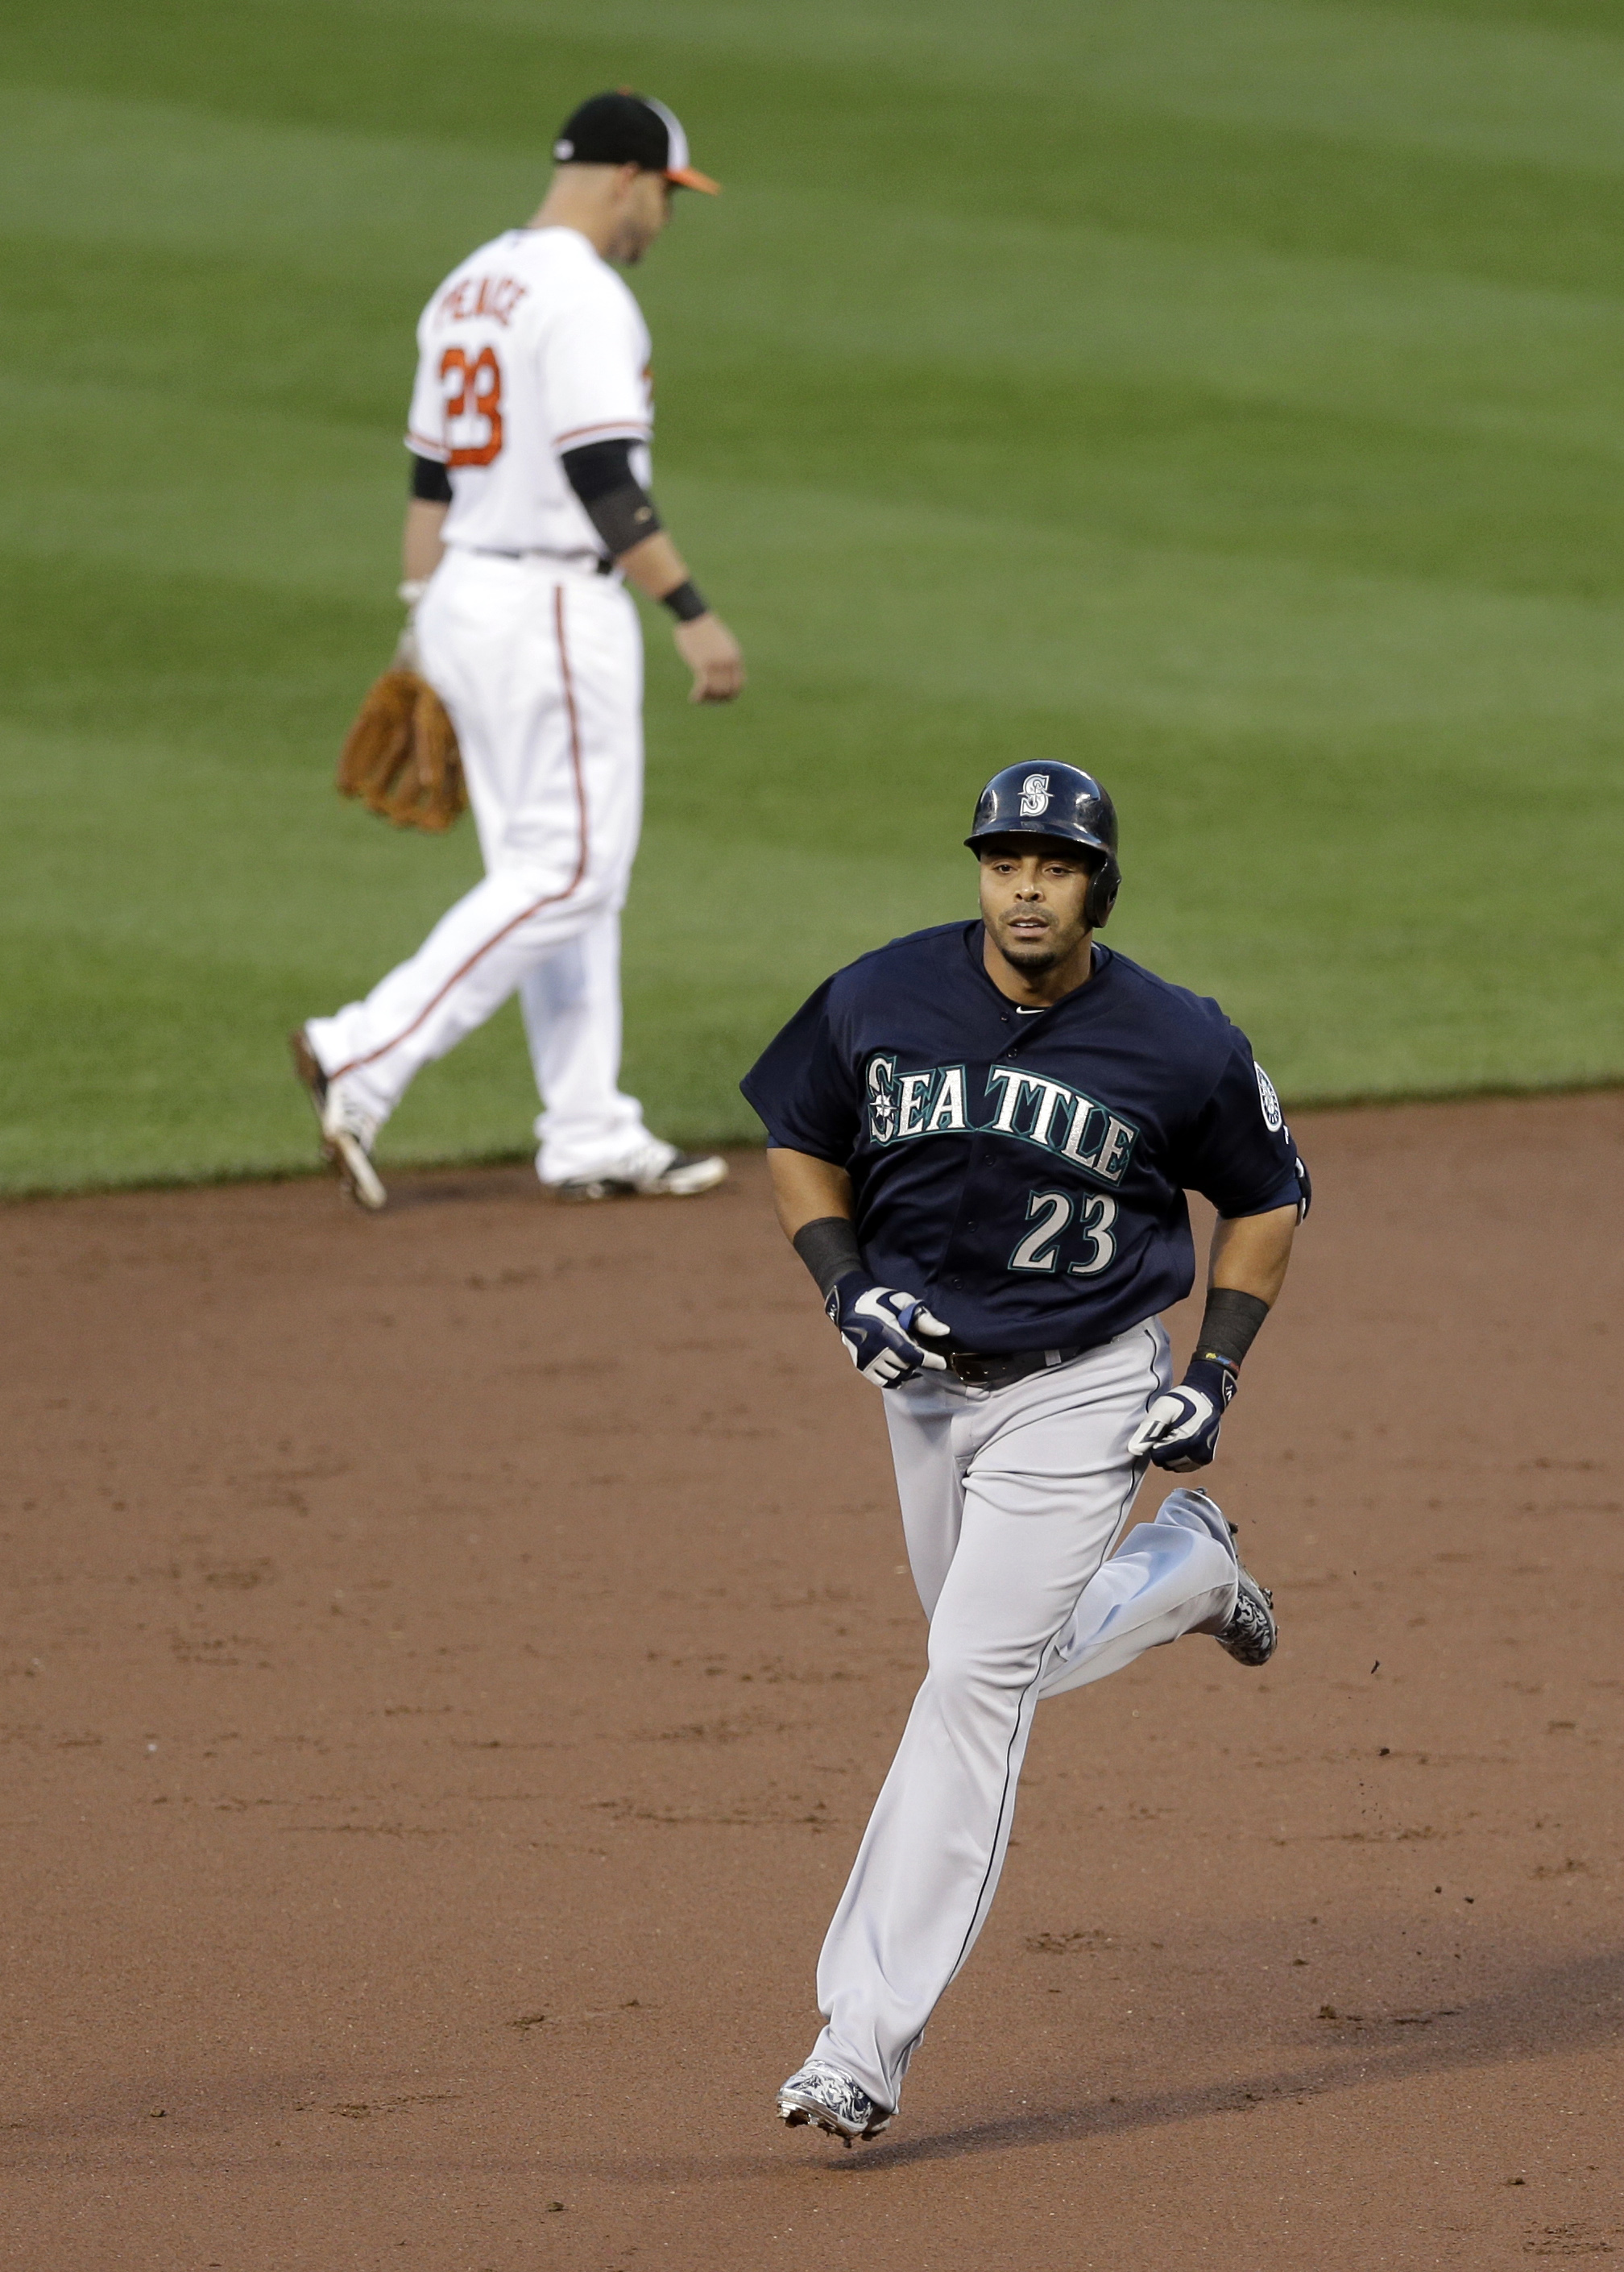 Seattle Mariners' Nelson Cruz rounds the bases past Baltimore Orioles second baseman Steve Pearce after hitting a three-run home run in the third inning of a baseball game, Tuesday, May 19, 2015, in Baltimore. (AP Photo/Patrick Semansky)